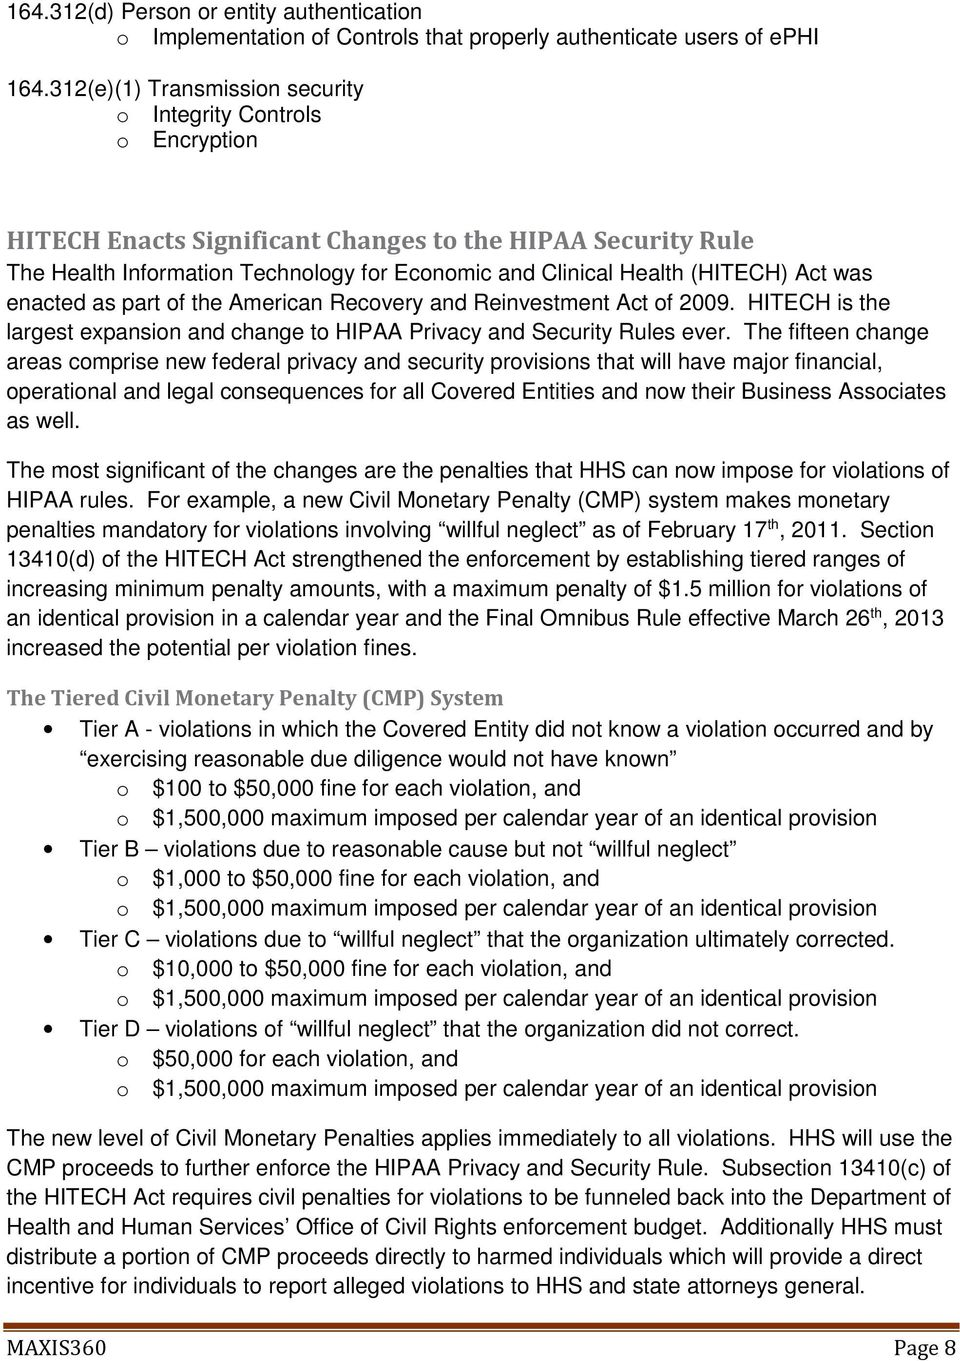 (HITECH) Act was enacted as part of the American Recovery and Reinvestment Act of 2009. HITECH is the largest expansion and change to HIPAA Privacy and Security Rules ever.